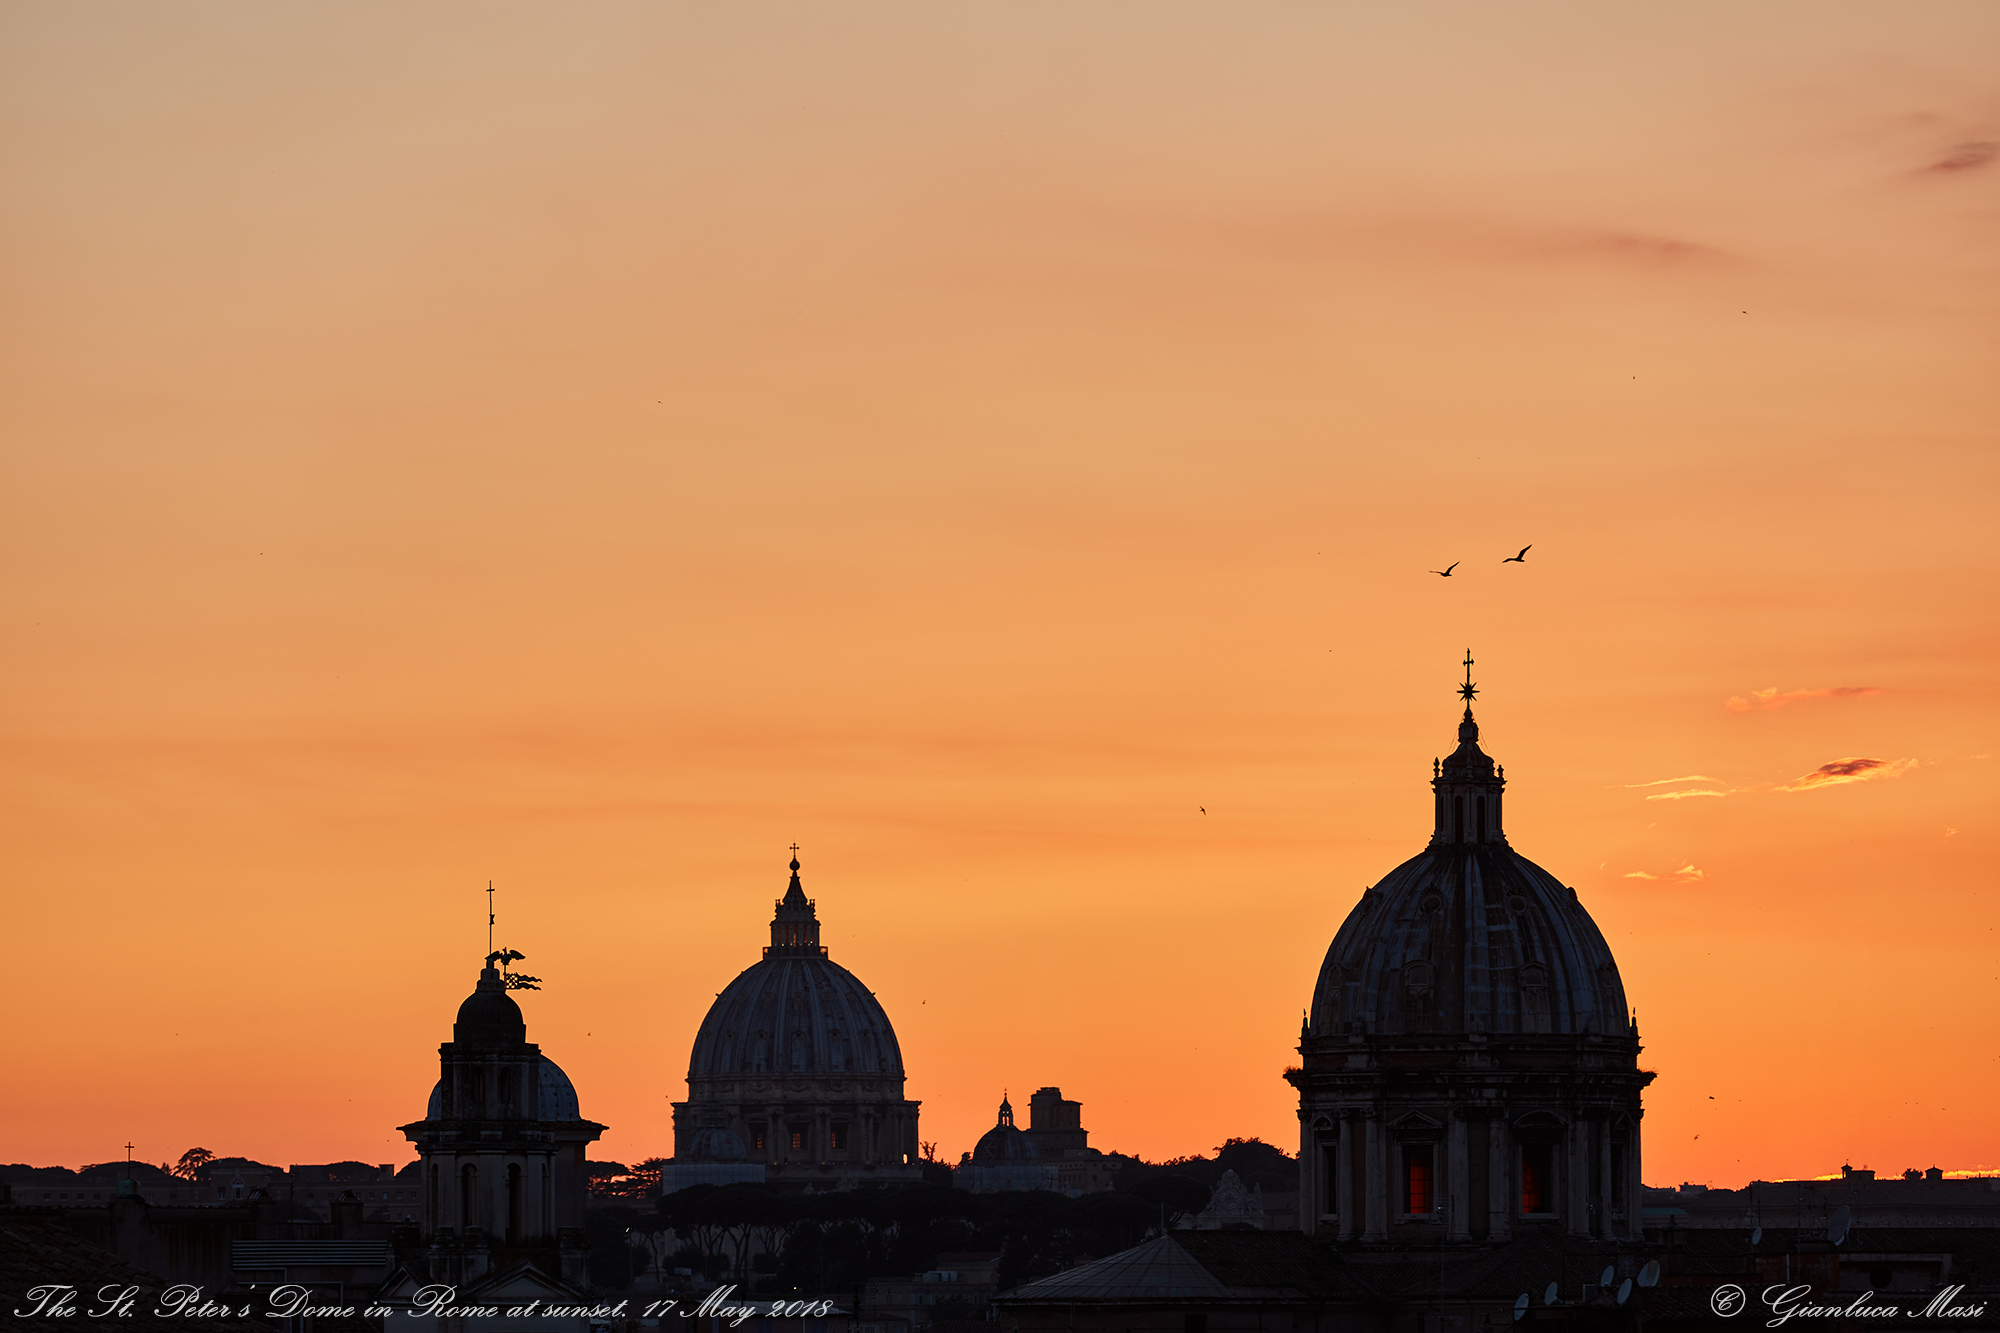 St. Peter's Dome at sunset. 17 May 2018.